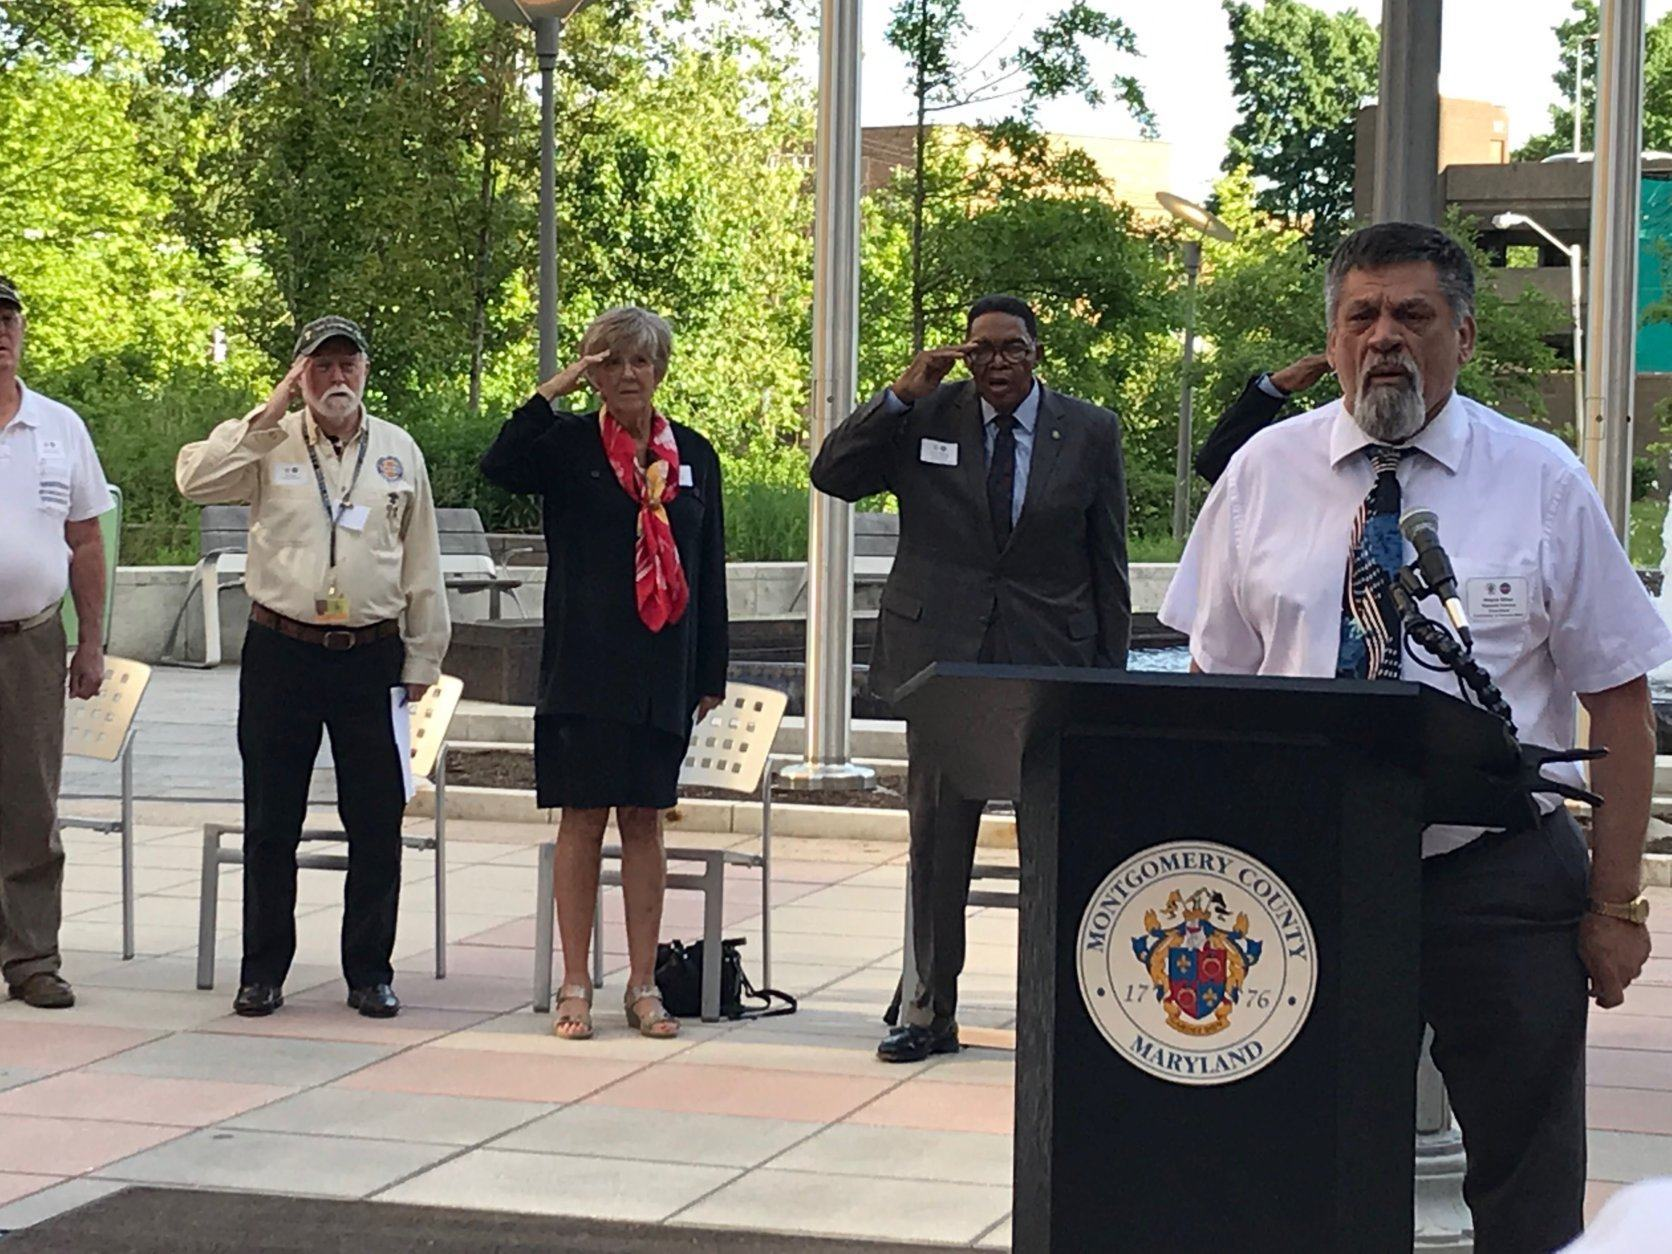 Vietnam veteran Wayne Miller sings the national anthem at a ceremony marking the anniversary since the dedication of the Montgomery County Vietnam Veterans Memorial wall in Rockville, Maryland. (WTOP/Michelle Basch)